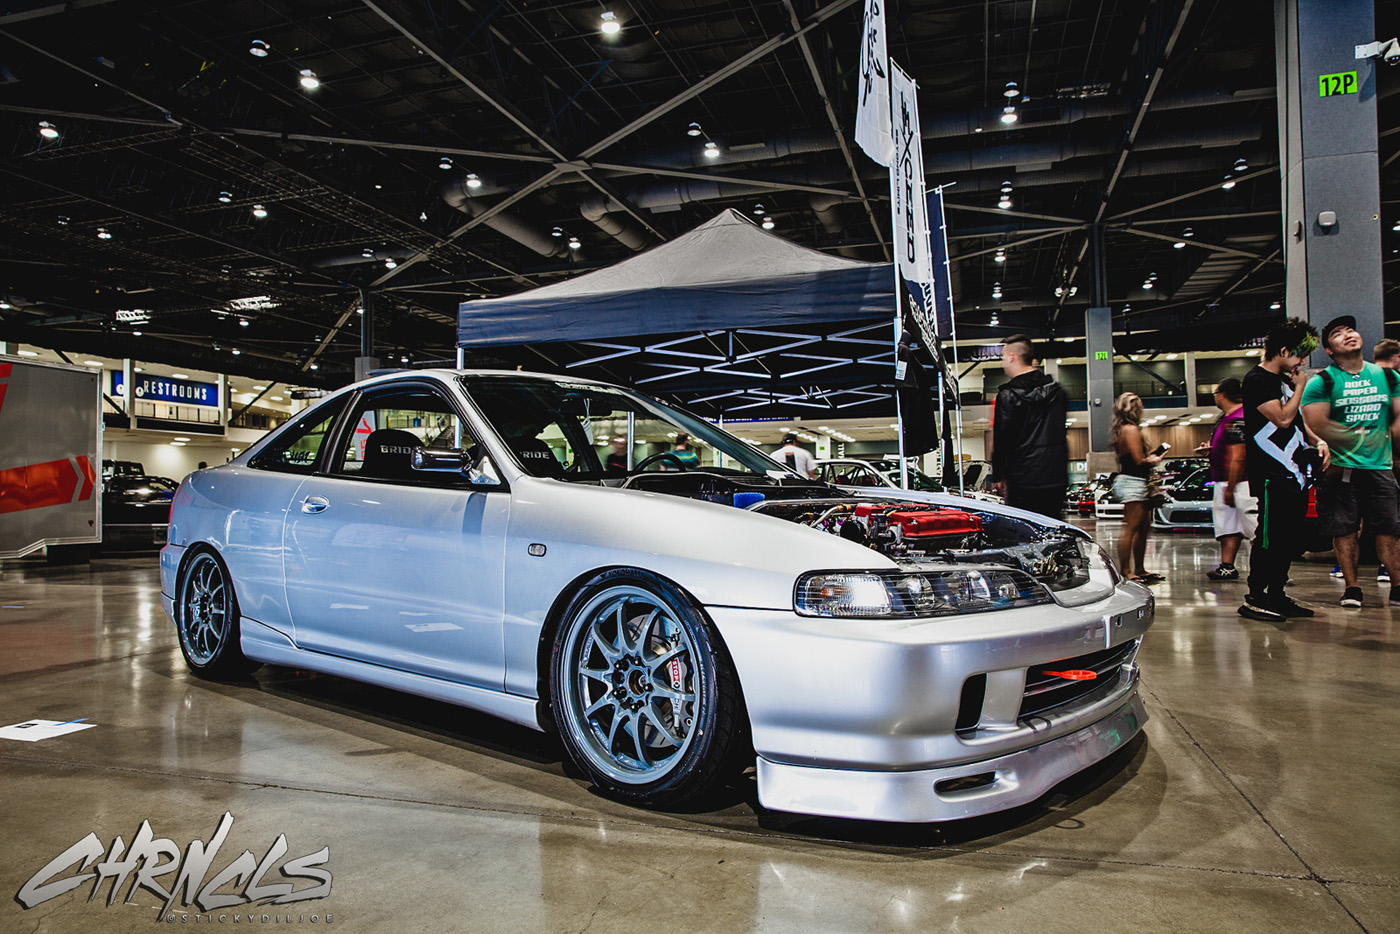 this is terryu0027s integra in all cleanedup and on display at the chronicles booth at wekfest seattle the only recent additions in the last couple